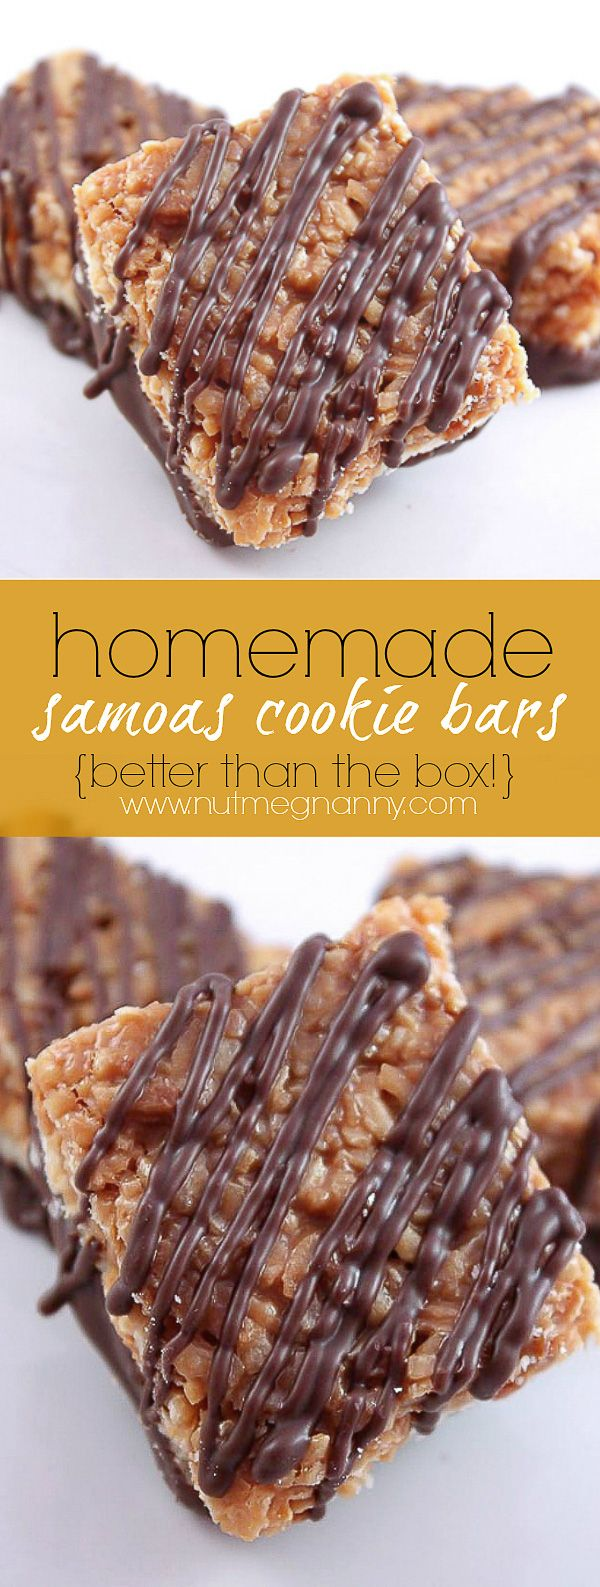 Another pinner: These homemade girl scout samoas cookie bars are better than the original! Easy to make and packed full of caramel, chocolate and coconut flavor!